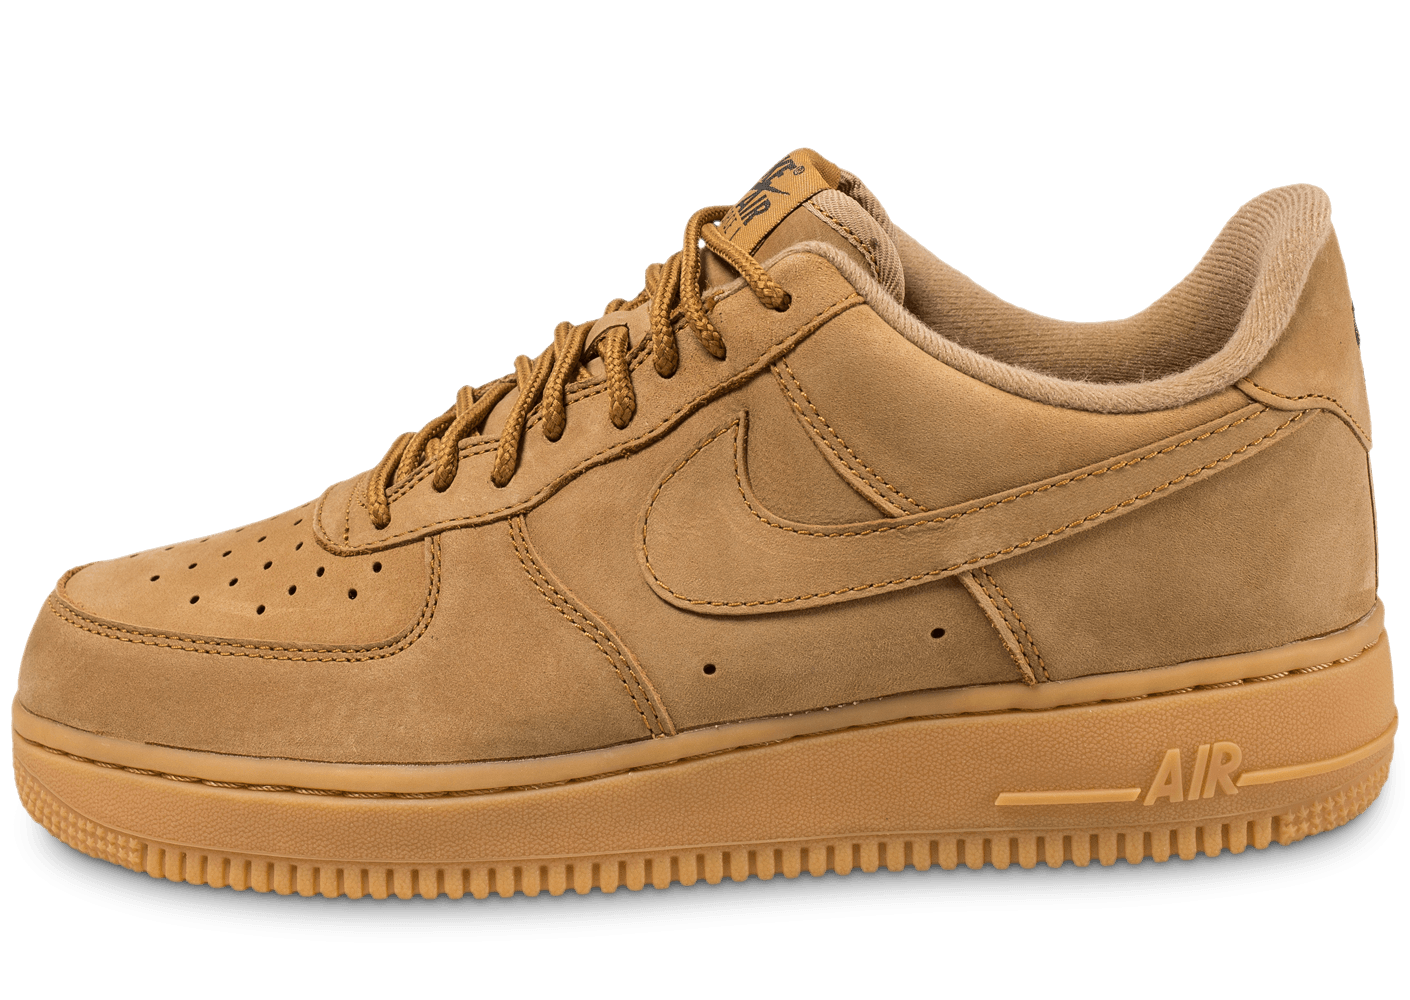 nike air force 1 39 07 low flax chaussures homme chausport. Black Bedroom Furniture Sets. Home Design Ideas